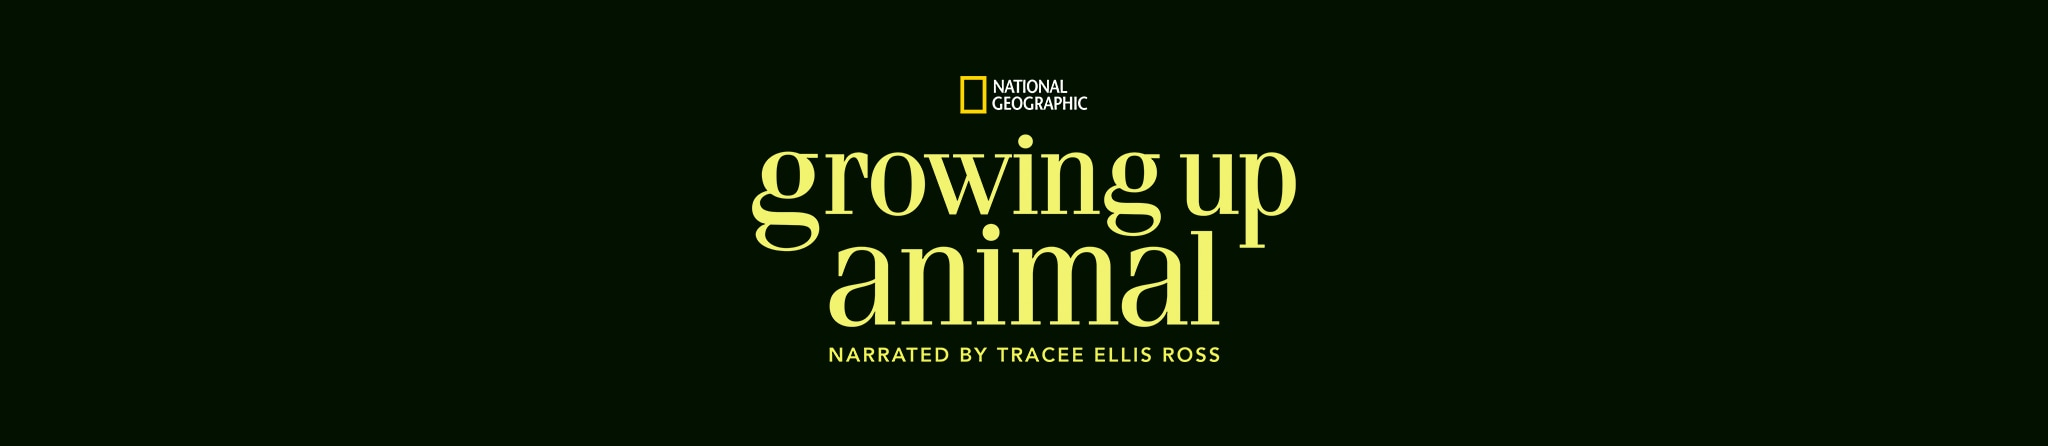 National Geographic | growing up animal | Narrated by Tracee Ellis Ross